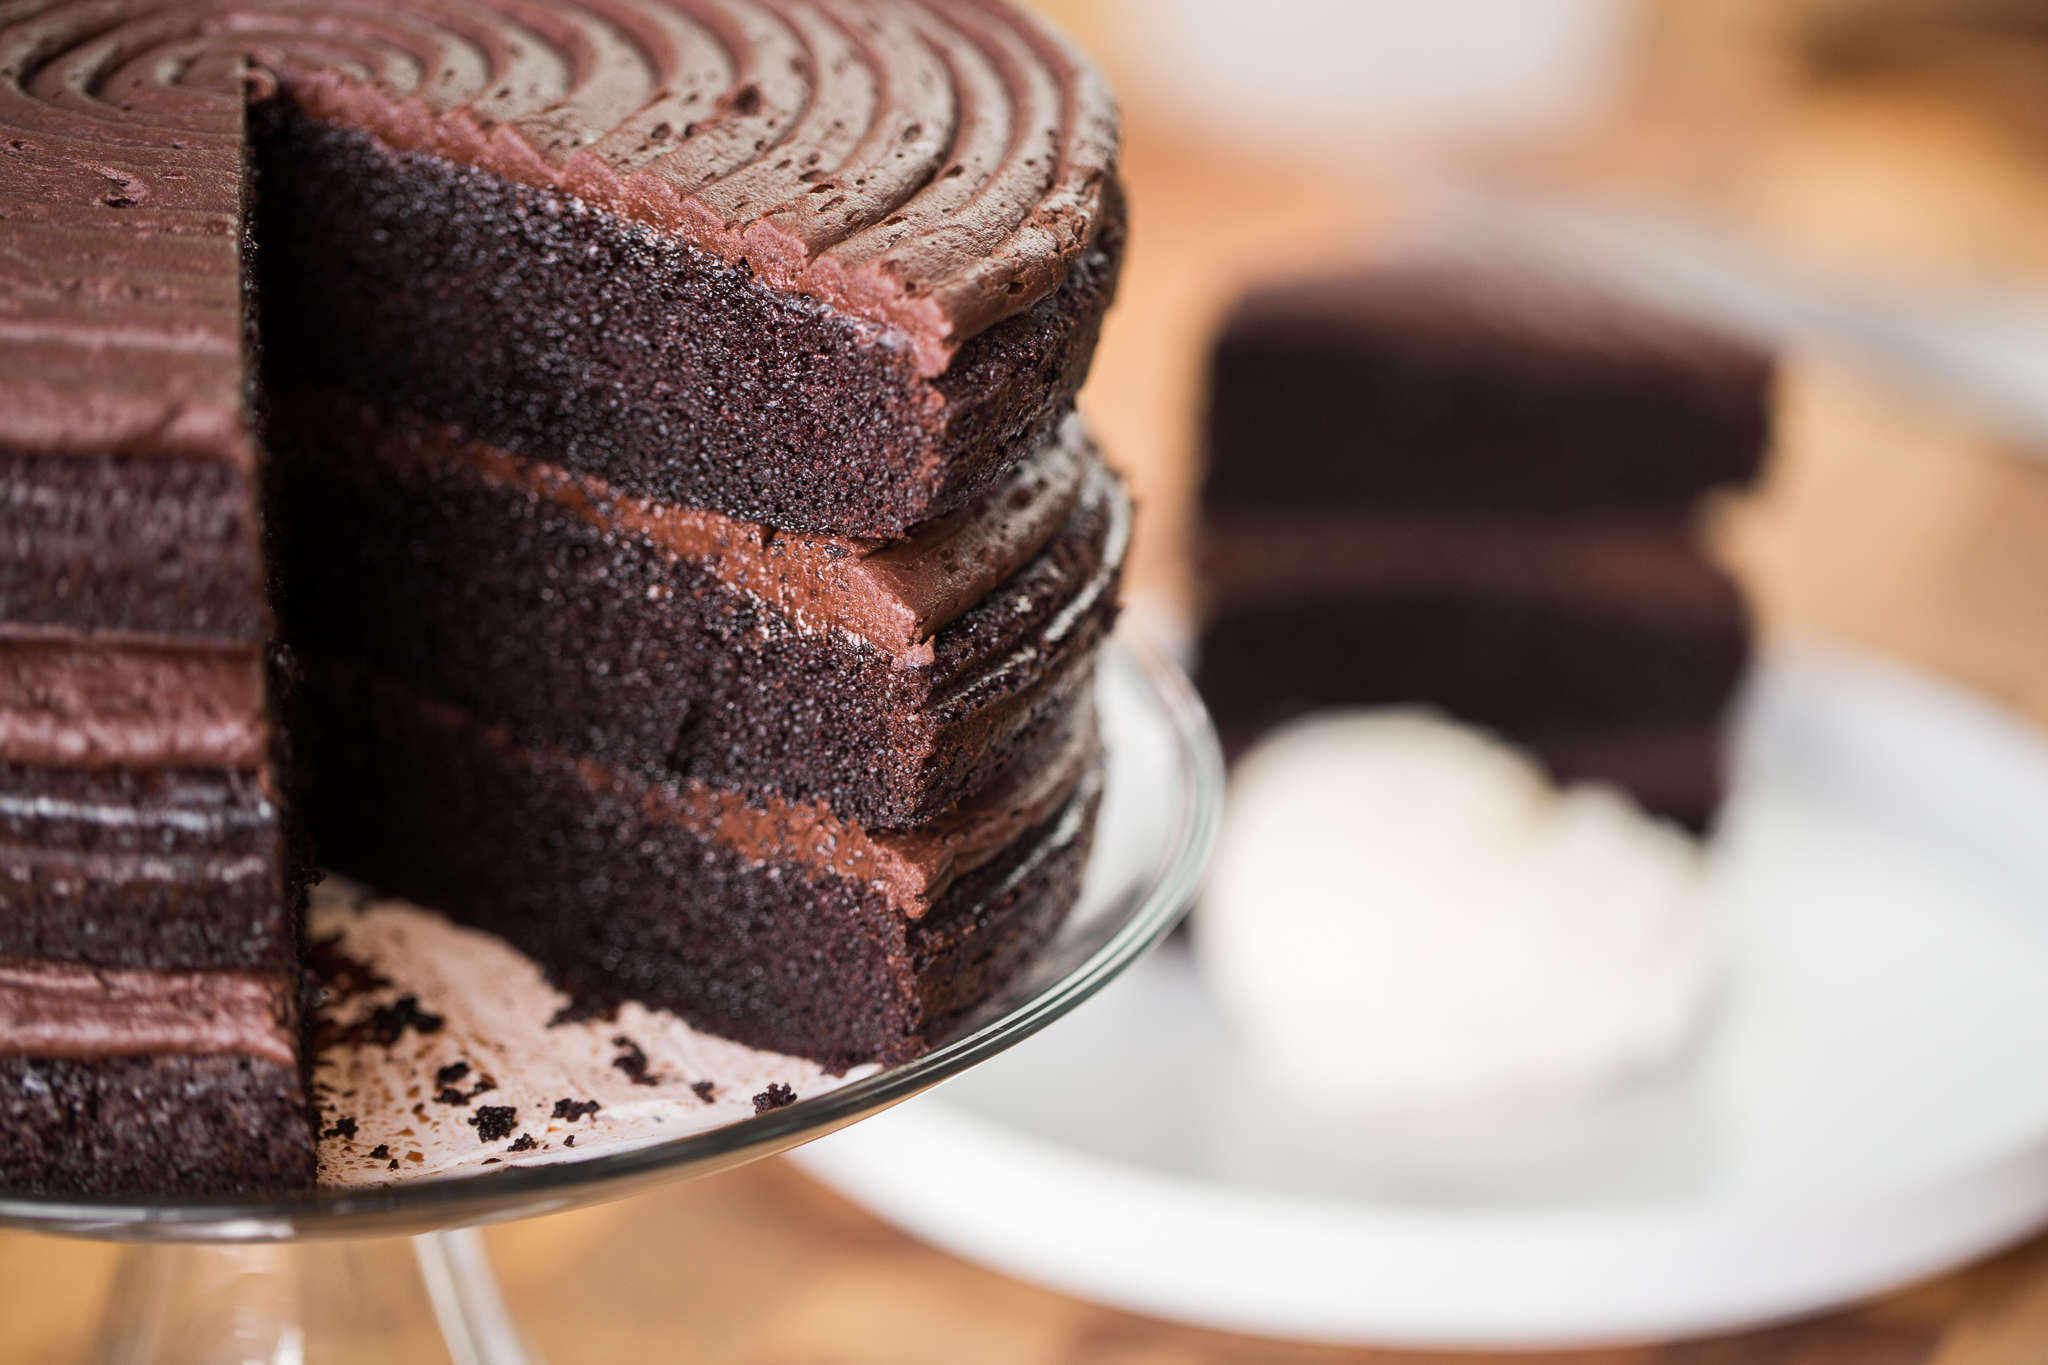 How To Make The Ultimate Chocolate Cake Food Republic